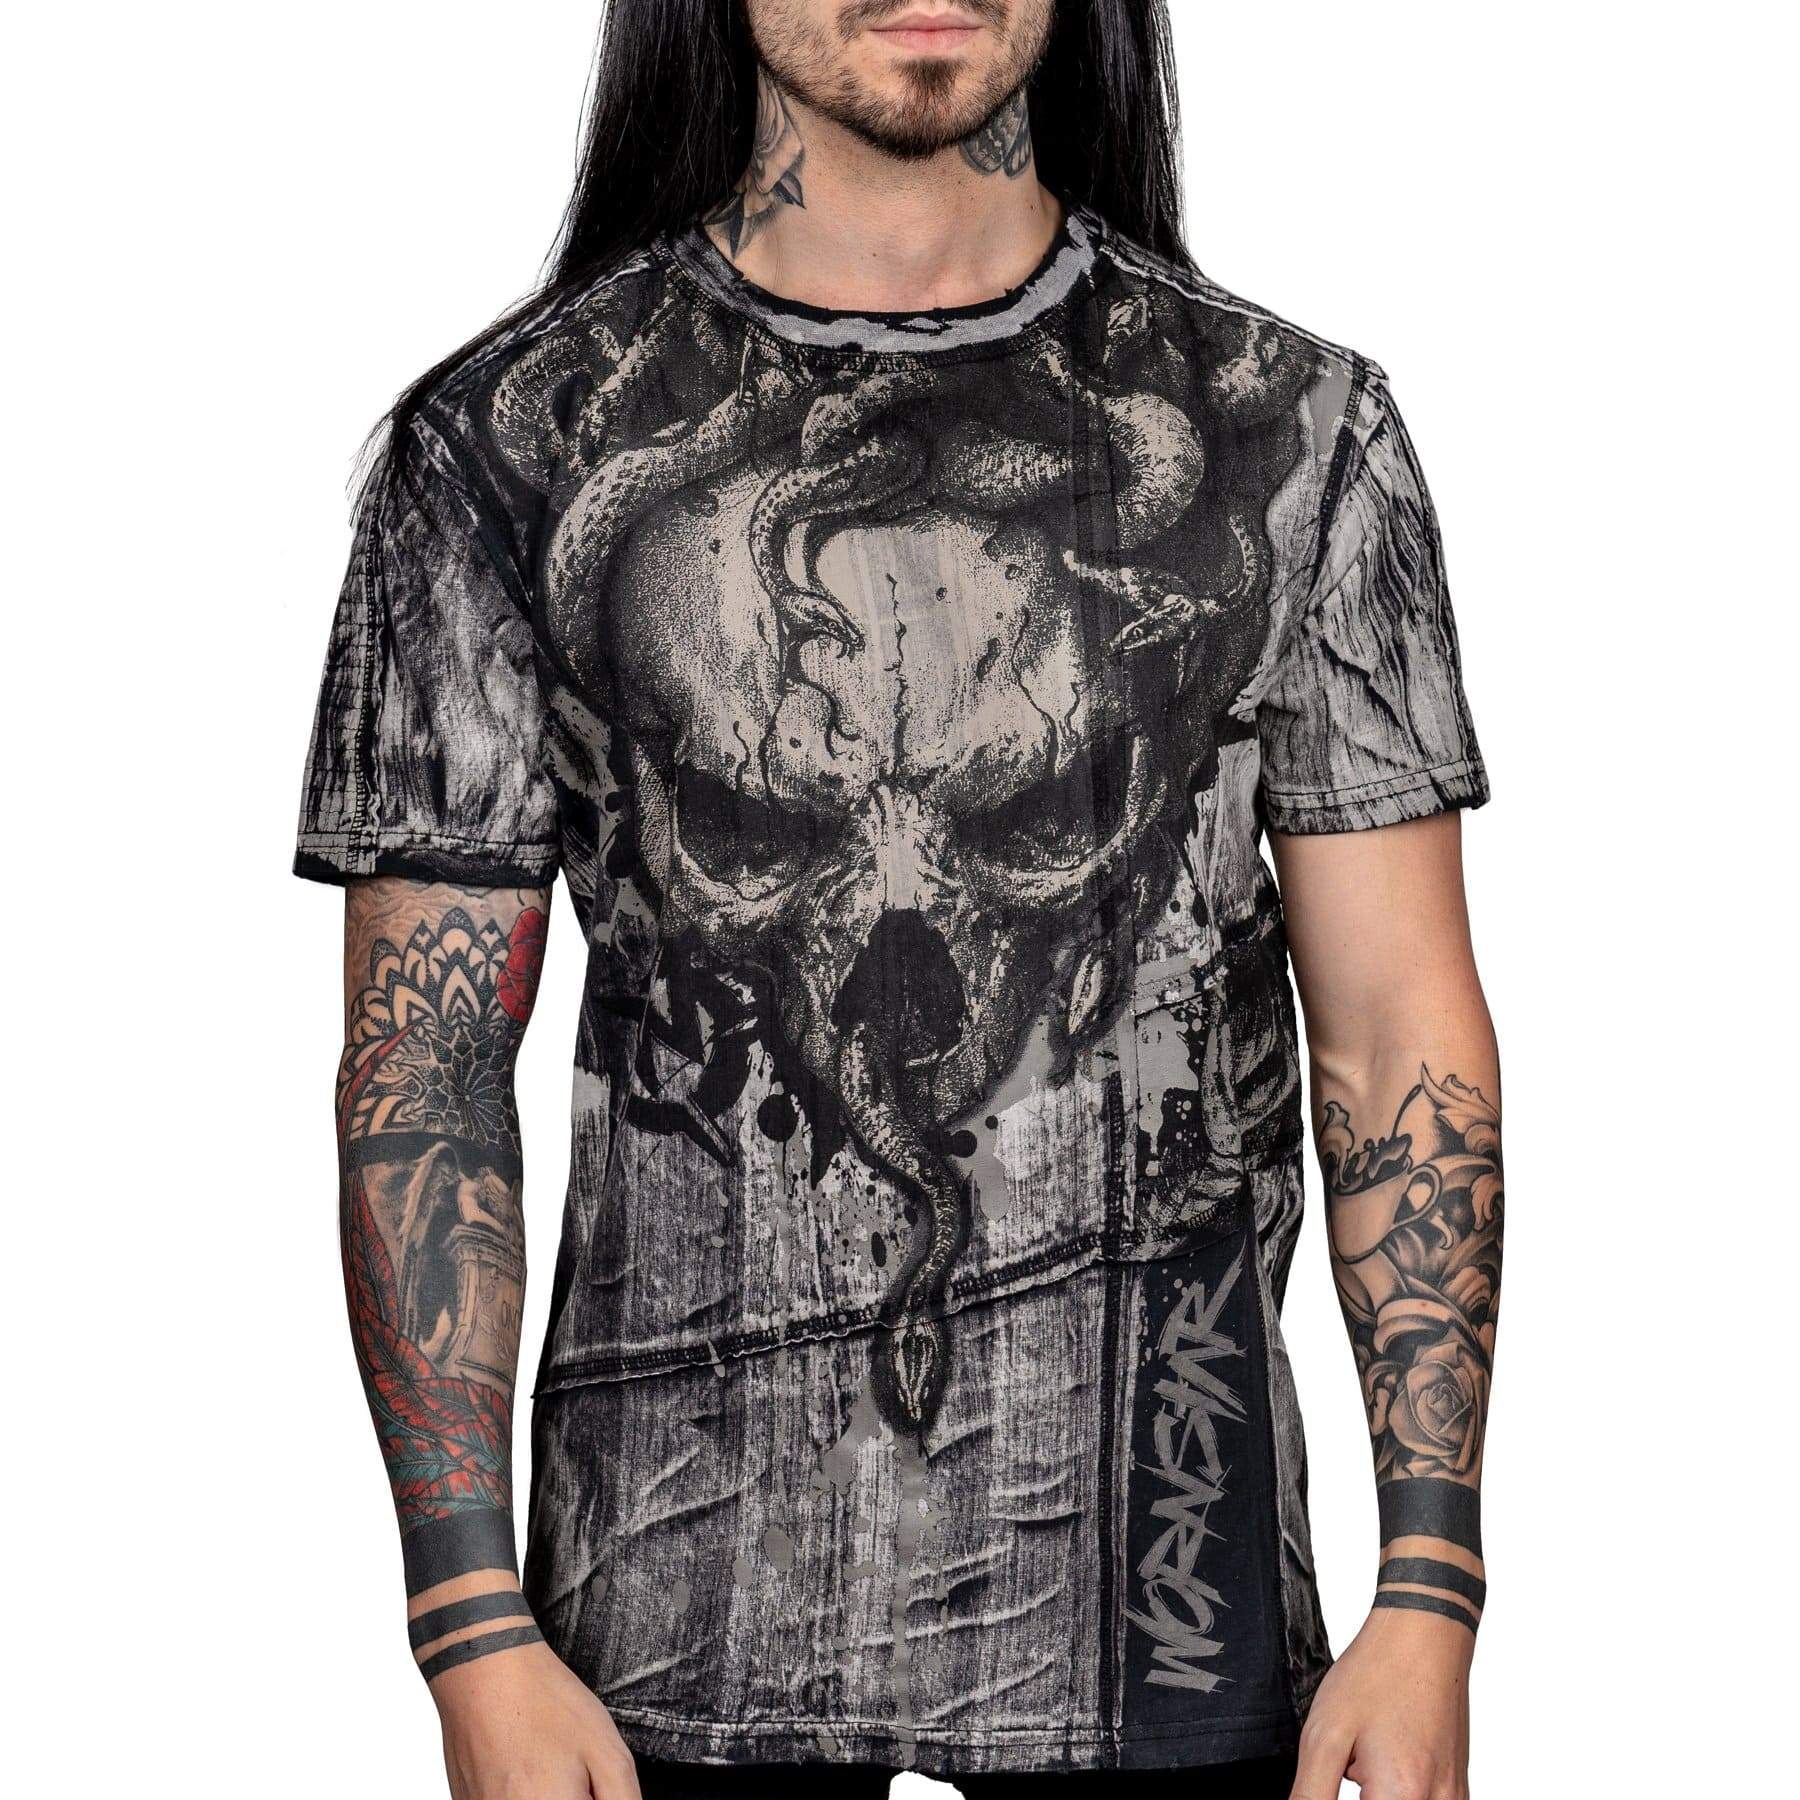 Wornstar Clothing Stheno tee with printed skull and snakes graphic.